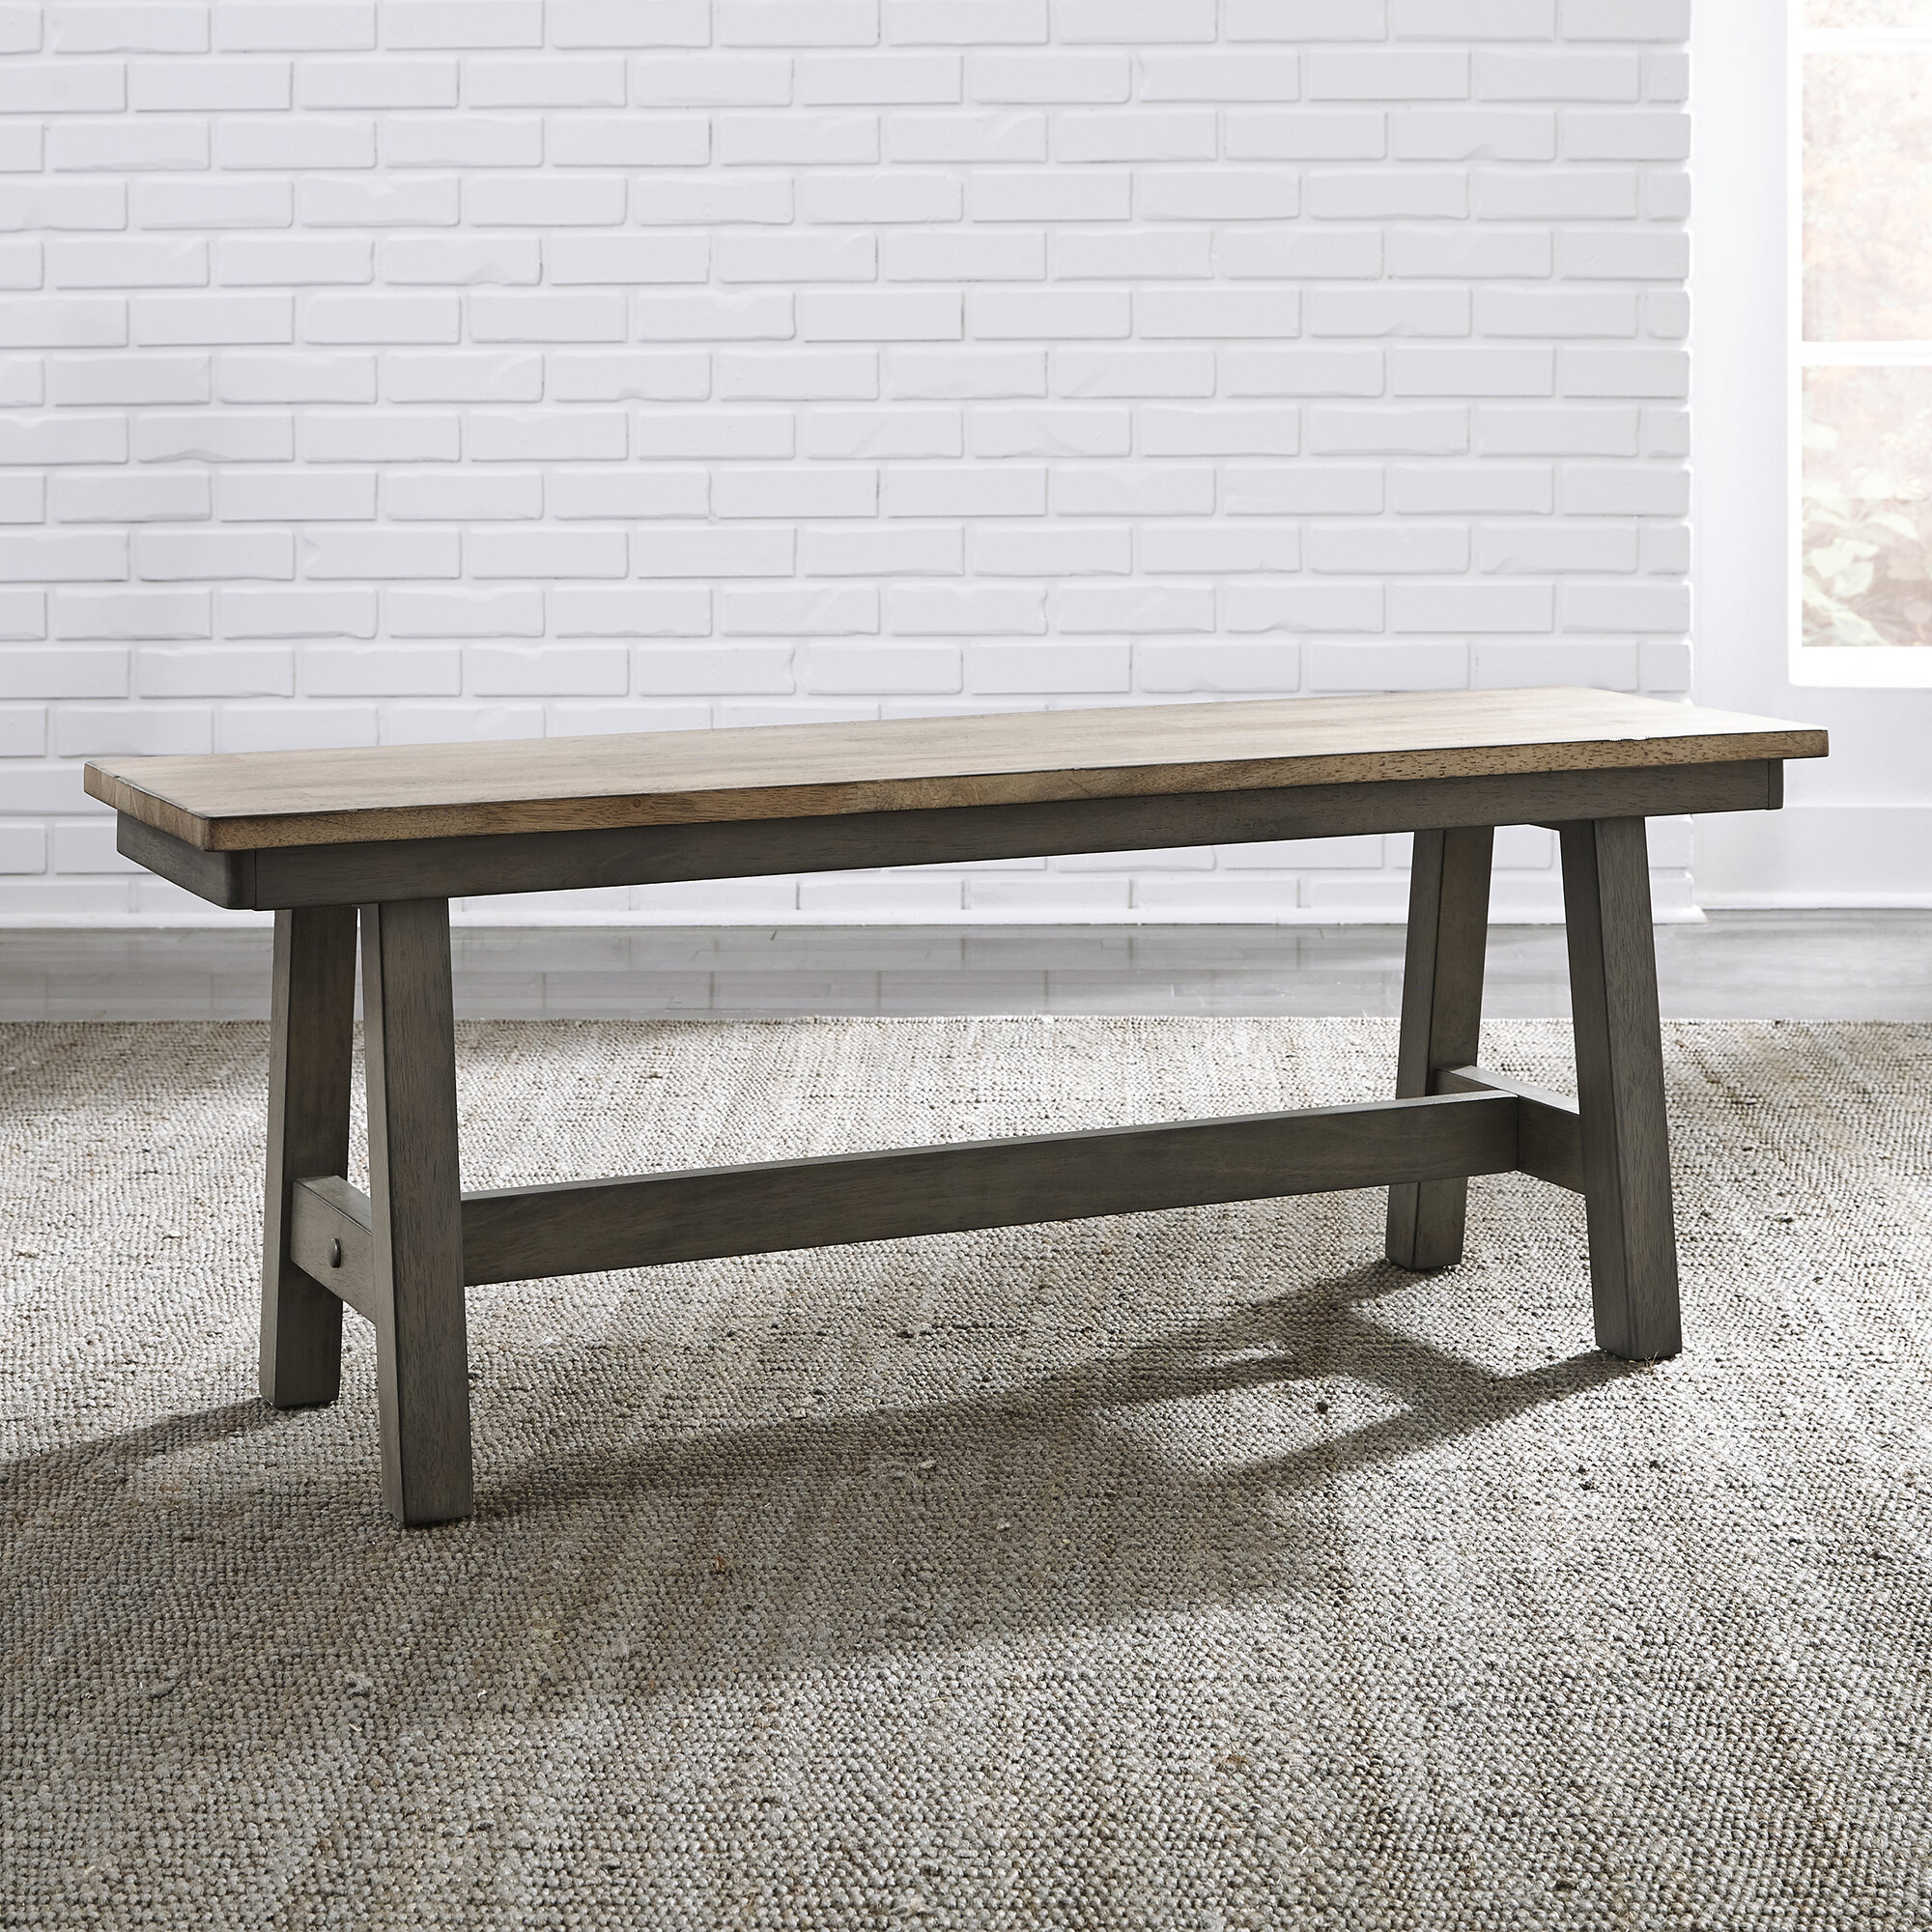 Gracie oaks kruger backless wood bench wayfair